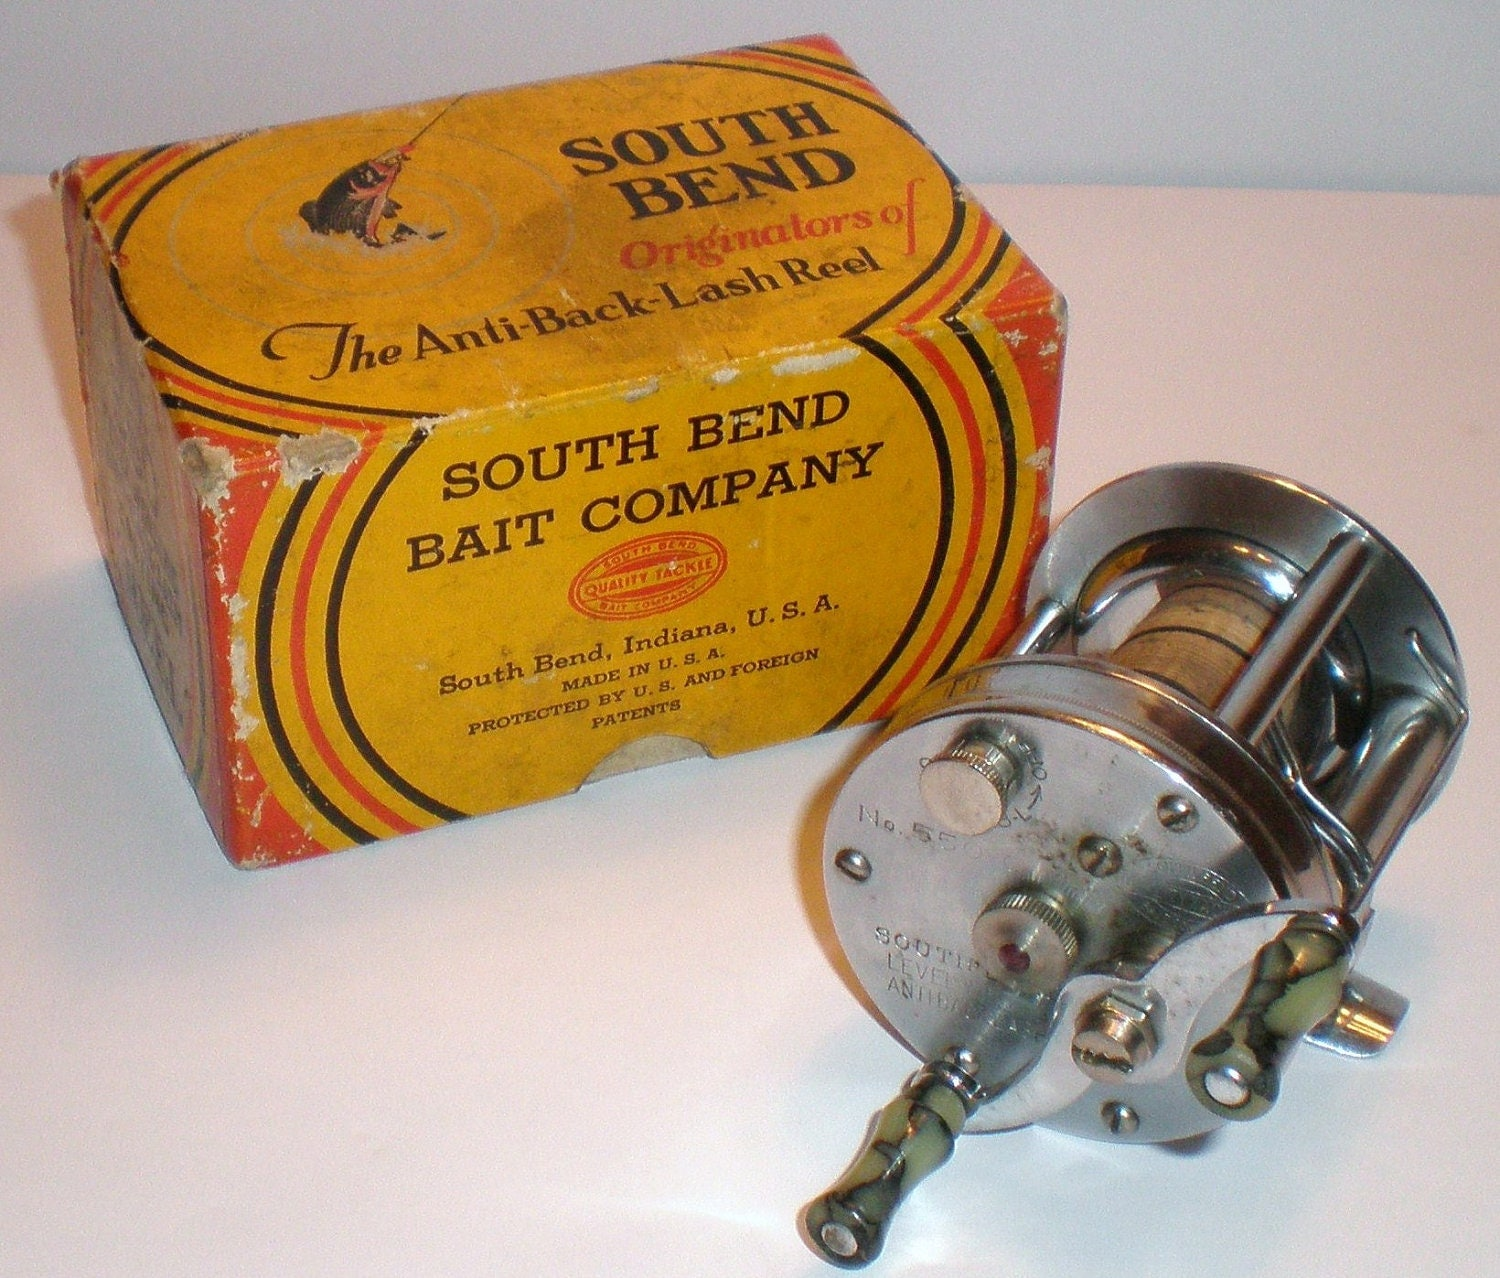 South bend vintage fishing reel model no 550 c by robertstore for South bend fishing reel